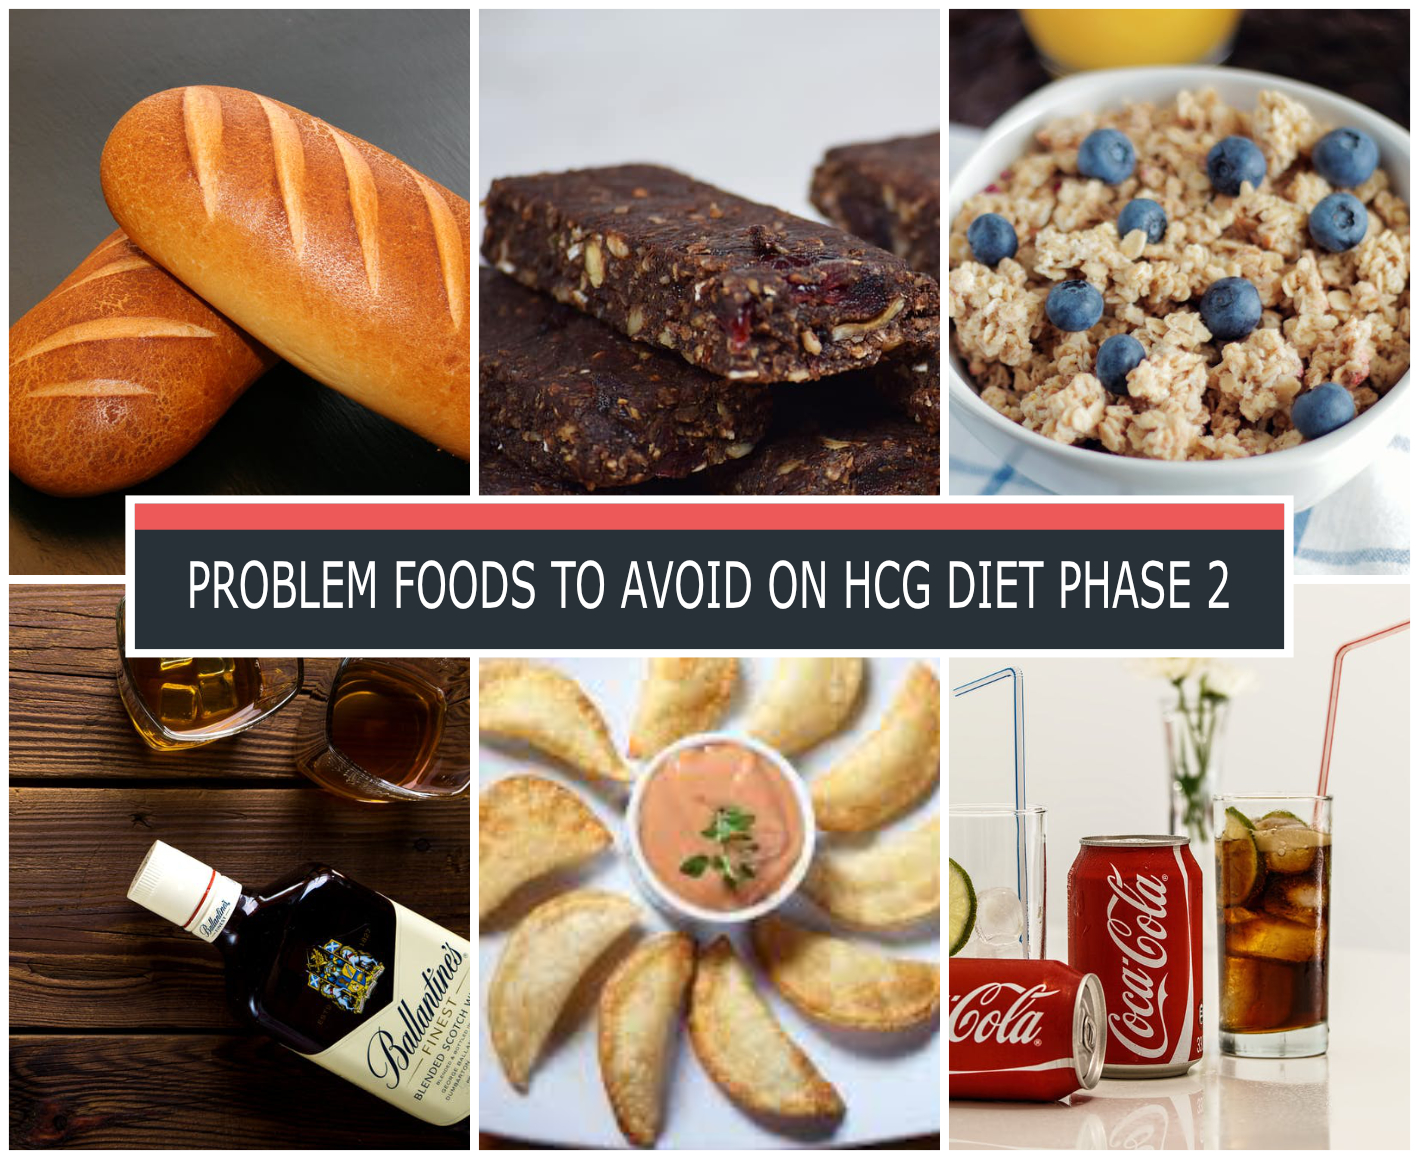 PROBLEM FOODS TO AVOID ON HCG DIET PHASE 2